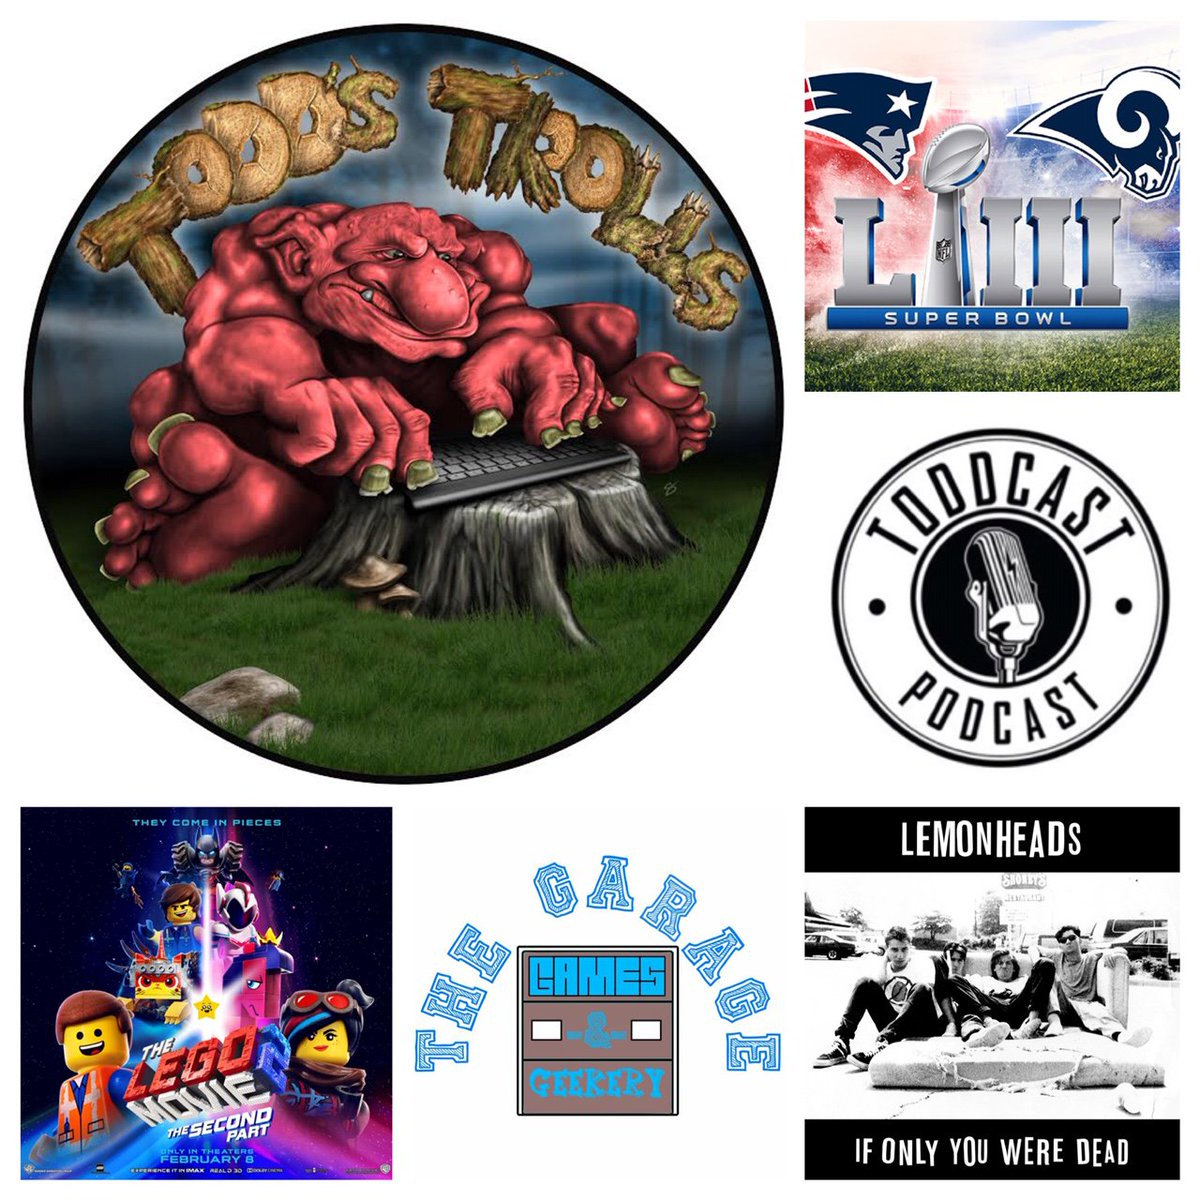 """The #trolls can be relentless. #TheLemonheads #SuperBowl & #TheLEGOMovie2 get chirped off in the latest """"Todd's Trolls"""".  No one and nothing is safe. http://ow.ly/sedW30nzUuU  * Powered by @GarageGeekery - Your place to slay trolls in #MapleRidge!"""